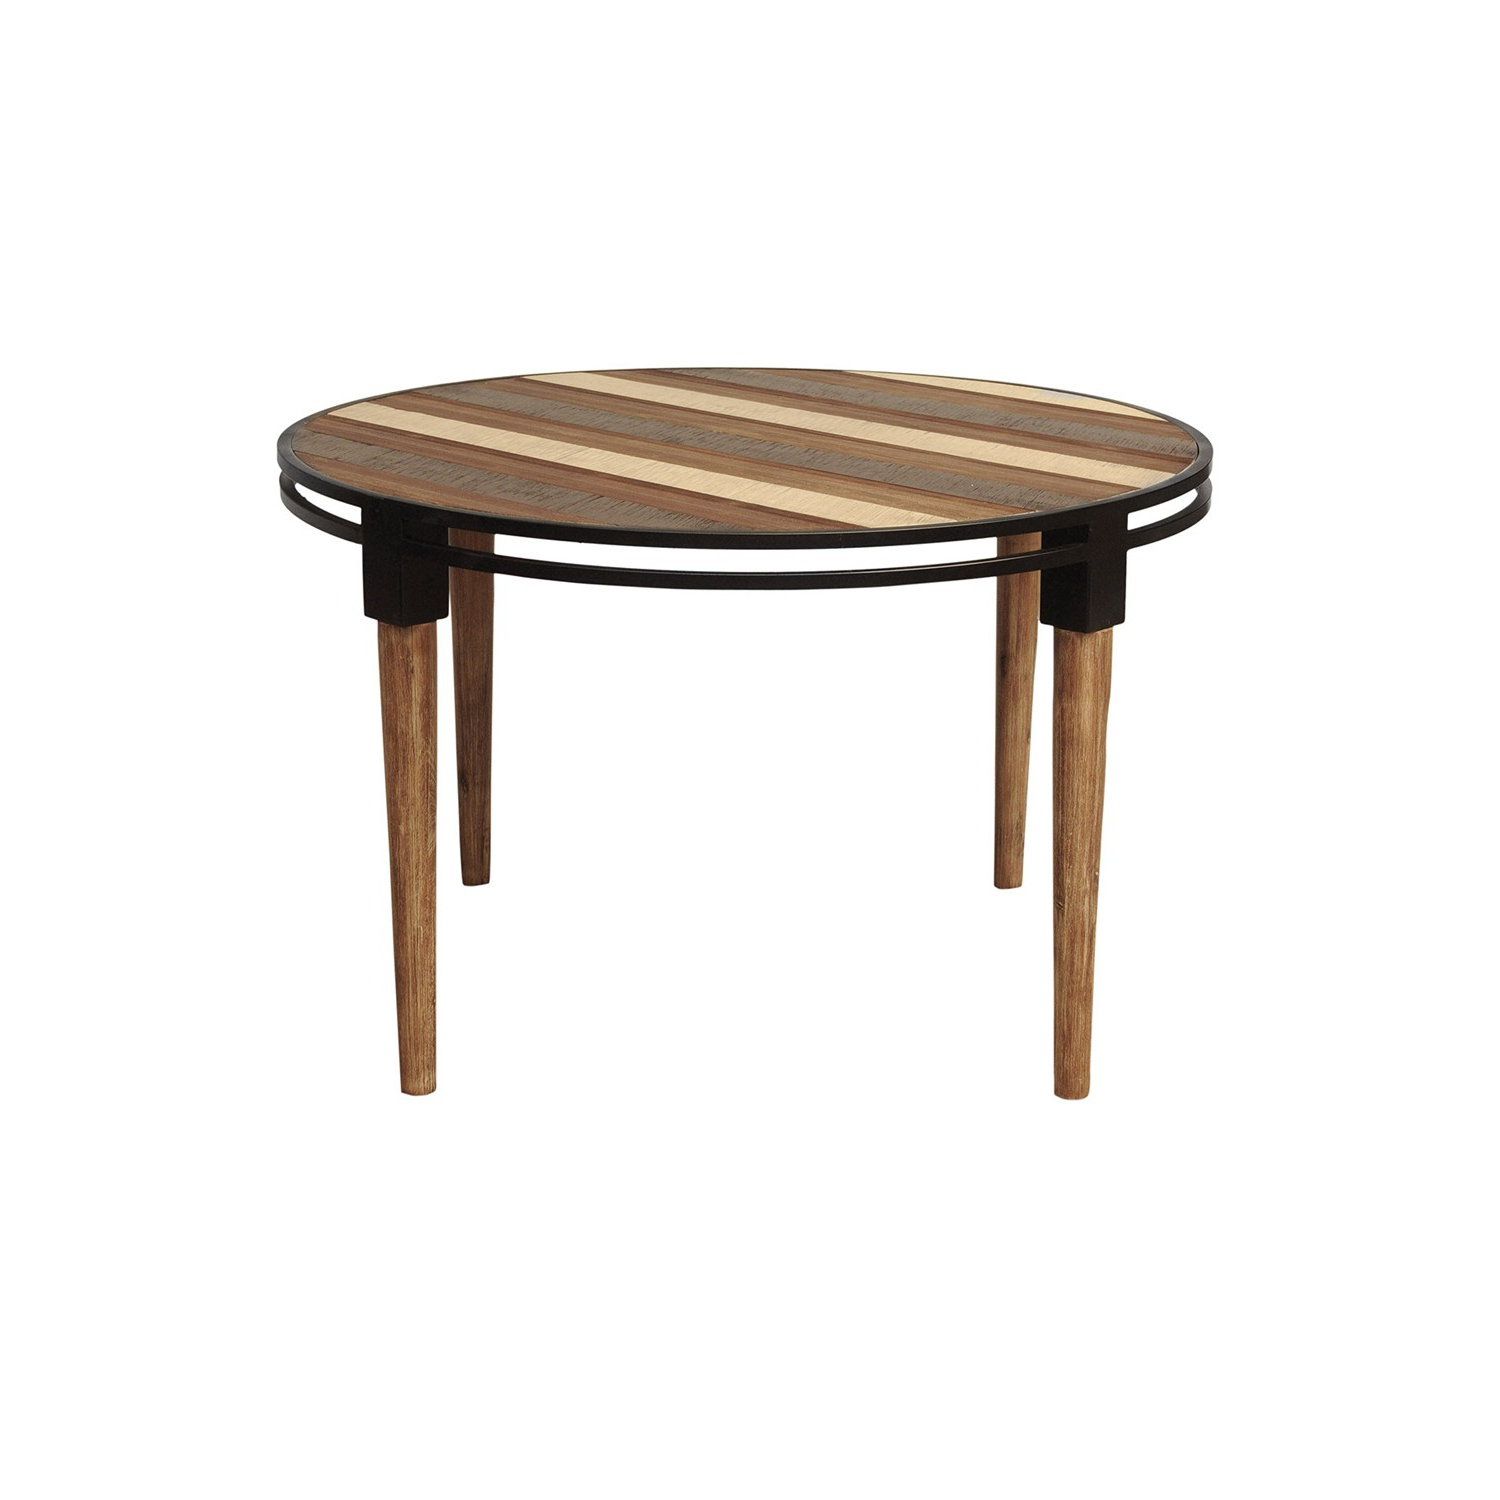 Most Popular Acacia Wood Medley Medium Dining Tables With Metal Base Within Medley Round Dining Table (View 7 of 26)